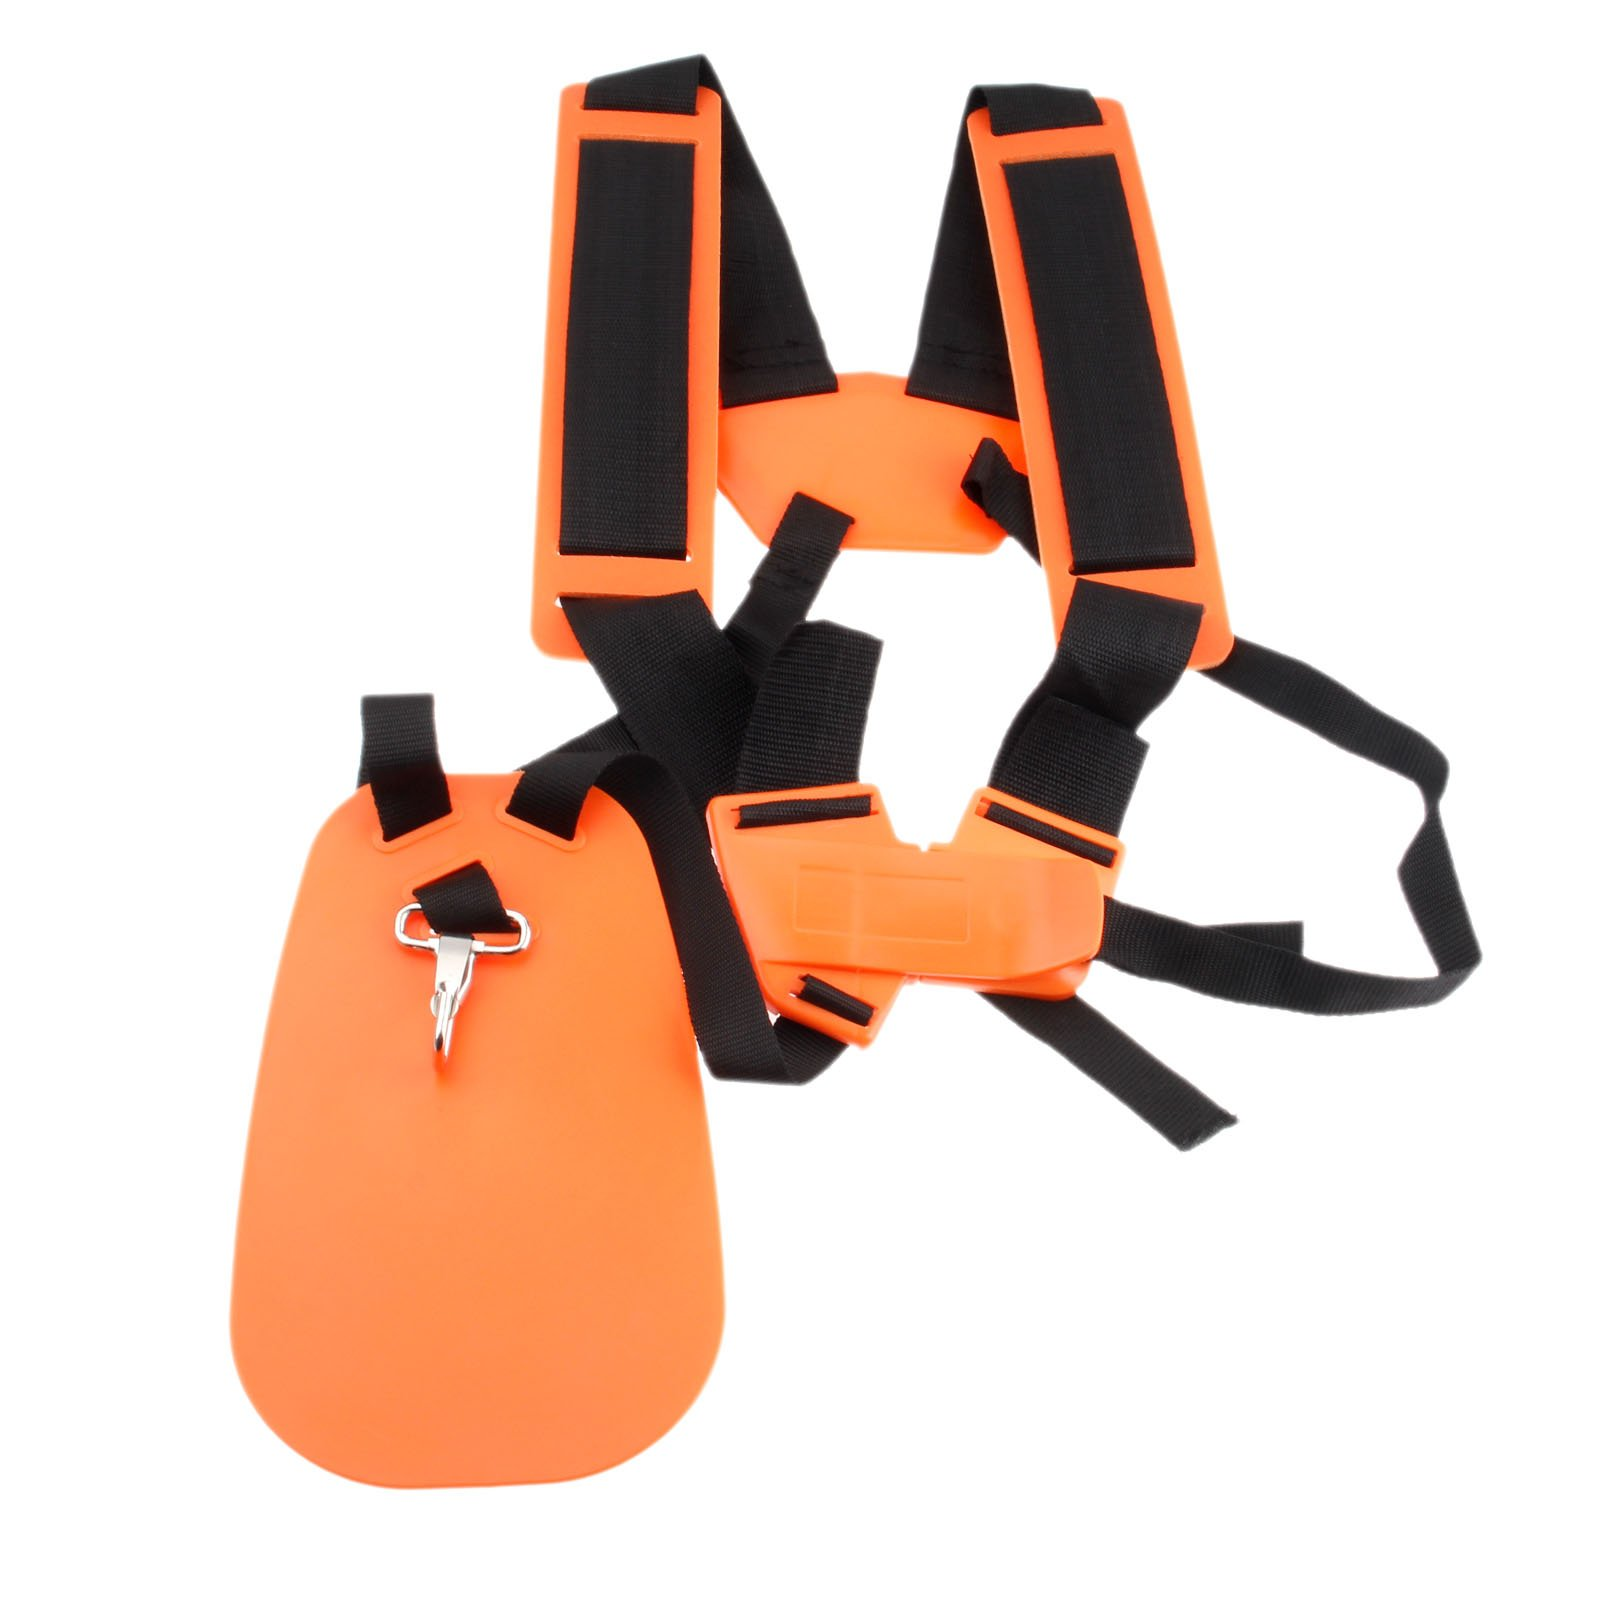 1pc Orange Double Shoulder Harness Strap for Strimmers Brush Cutter Power Pruner